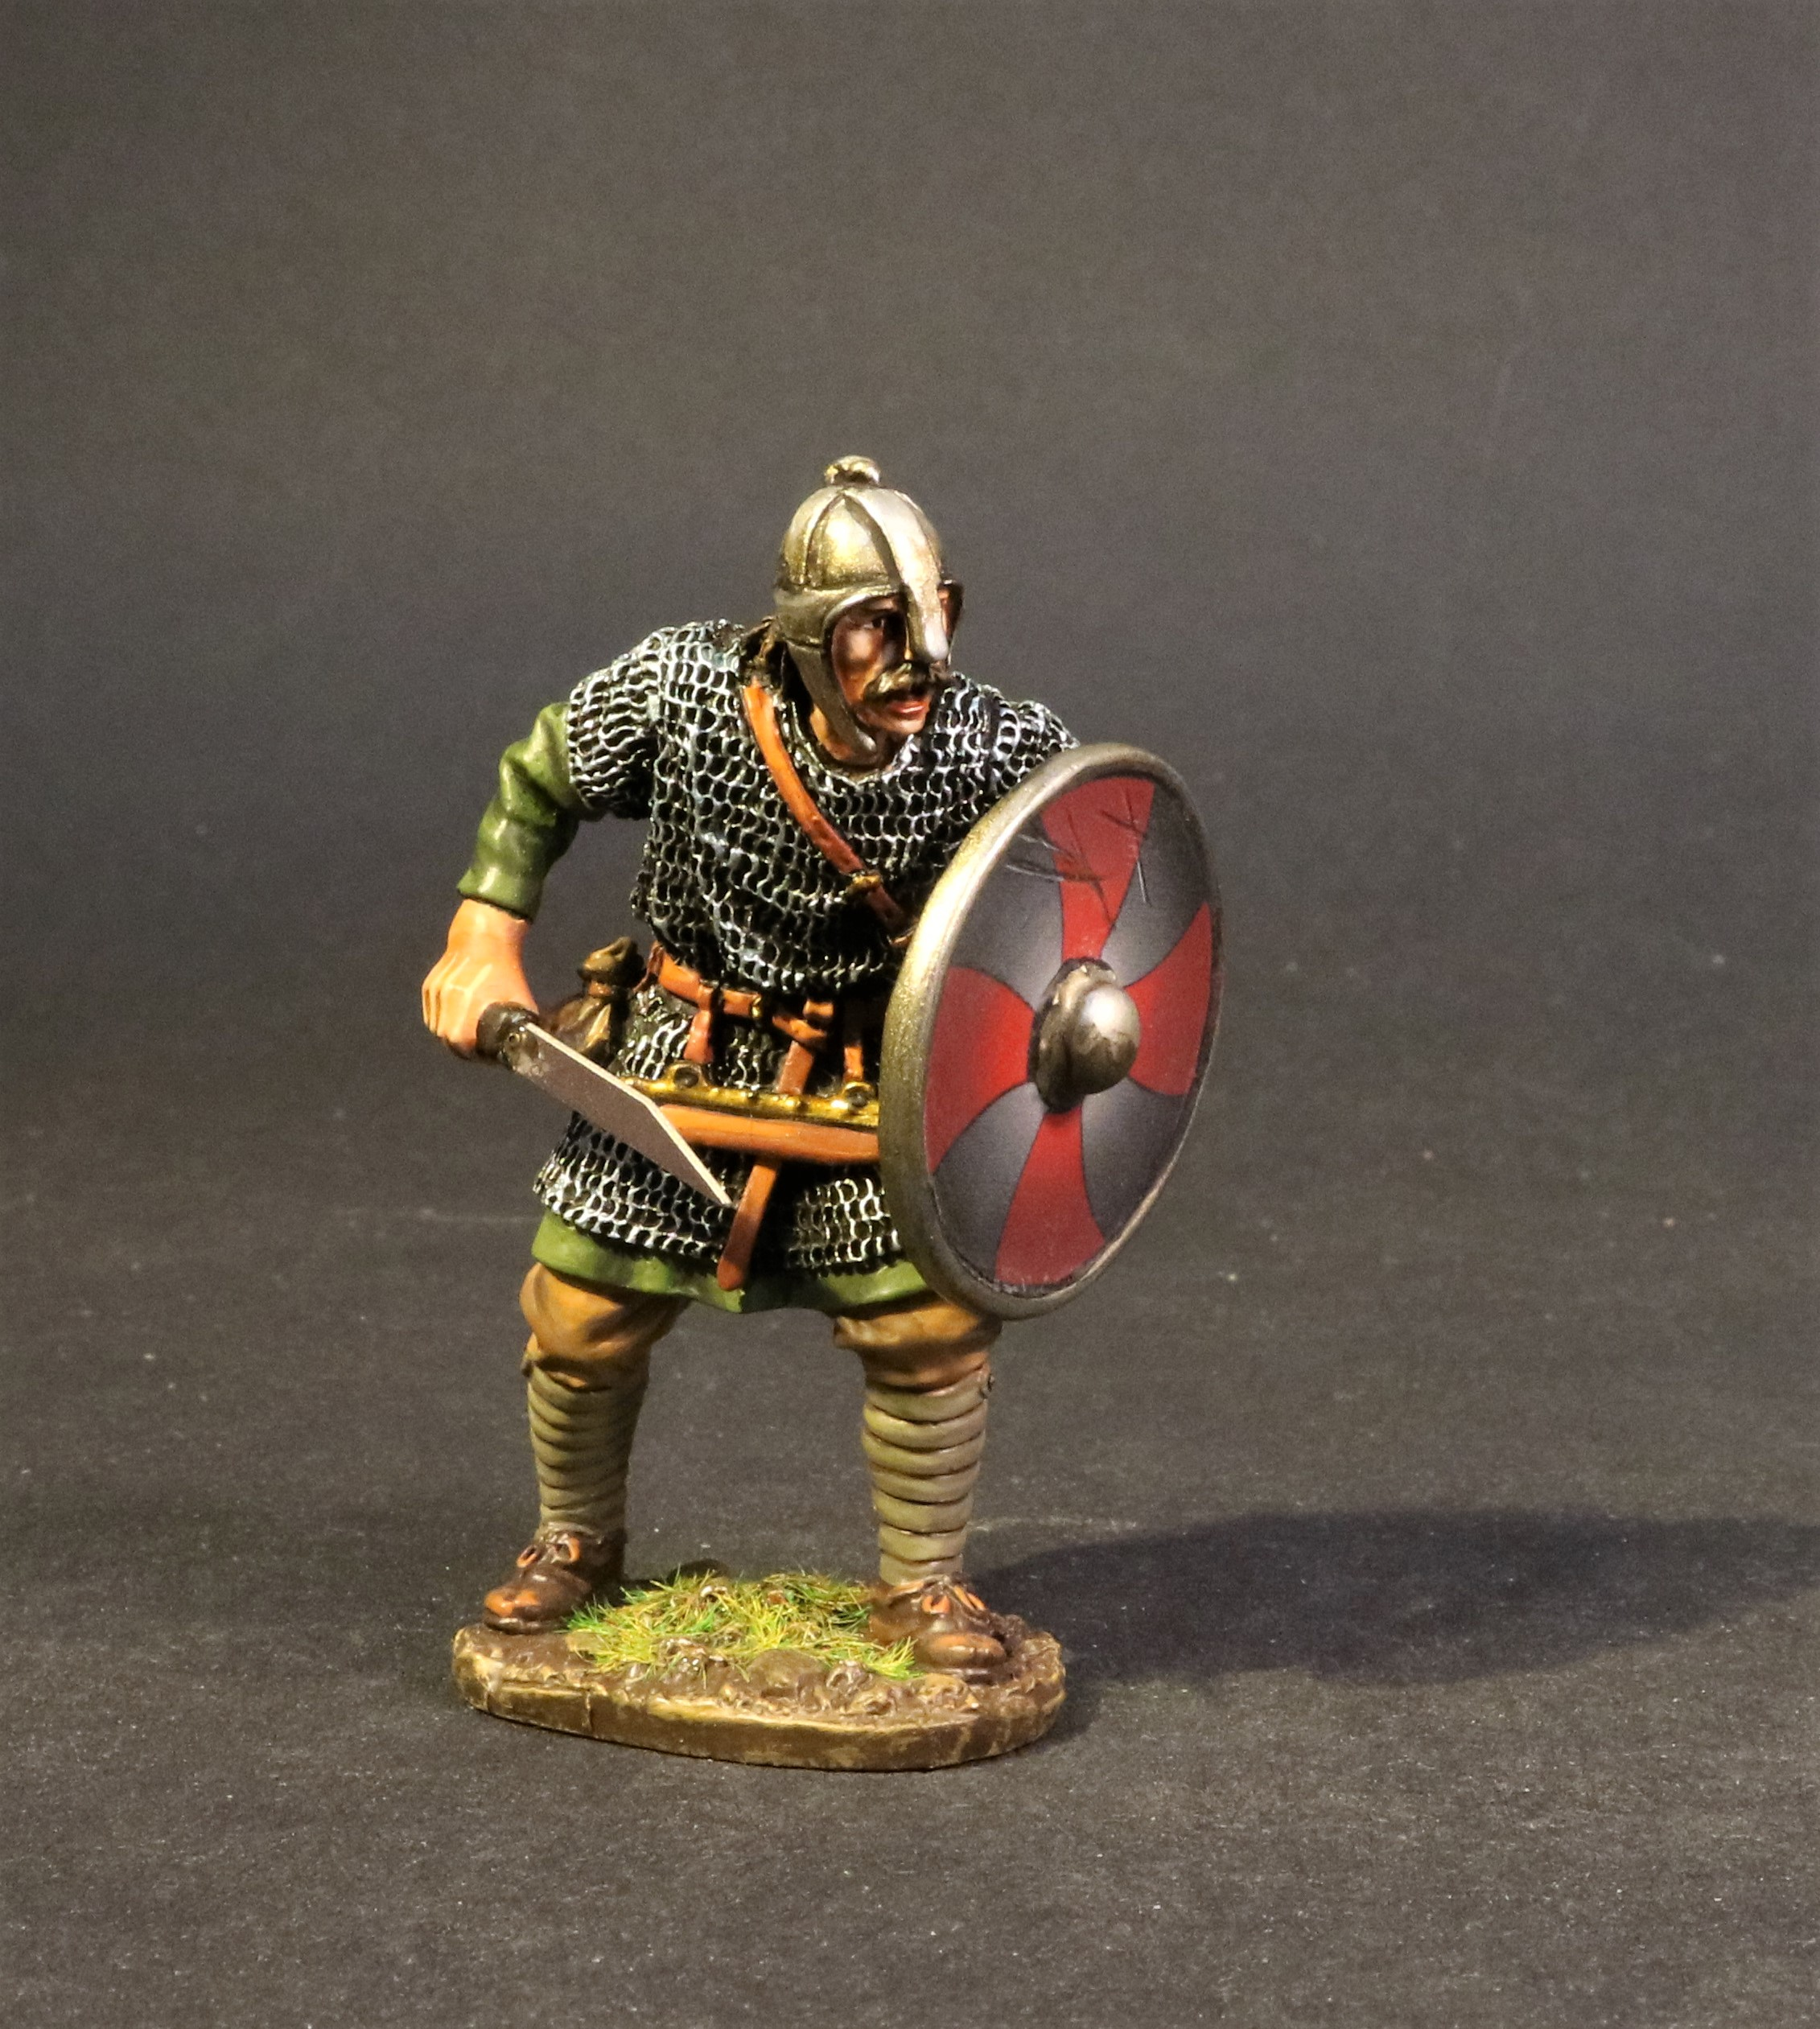 anglo-saxon military organization